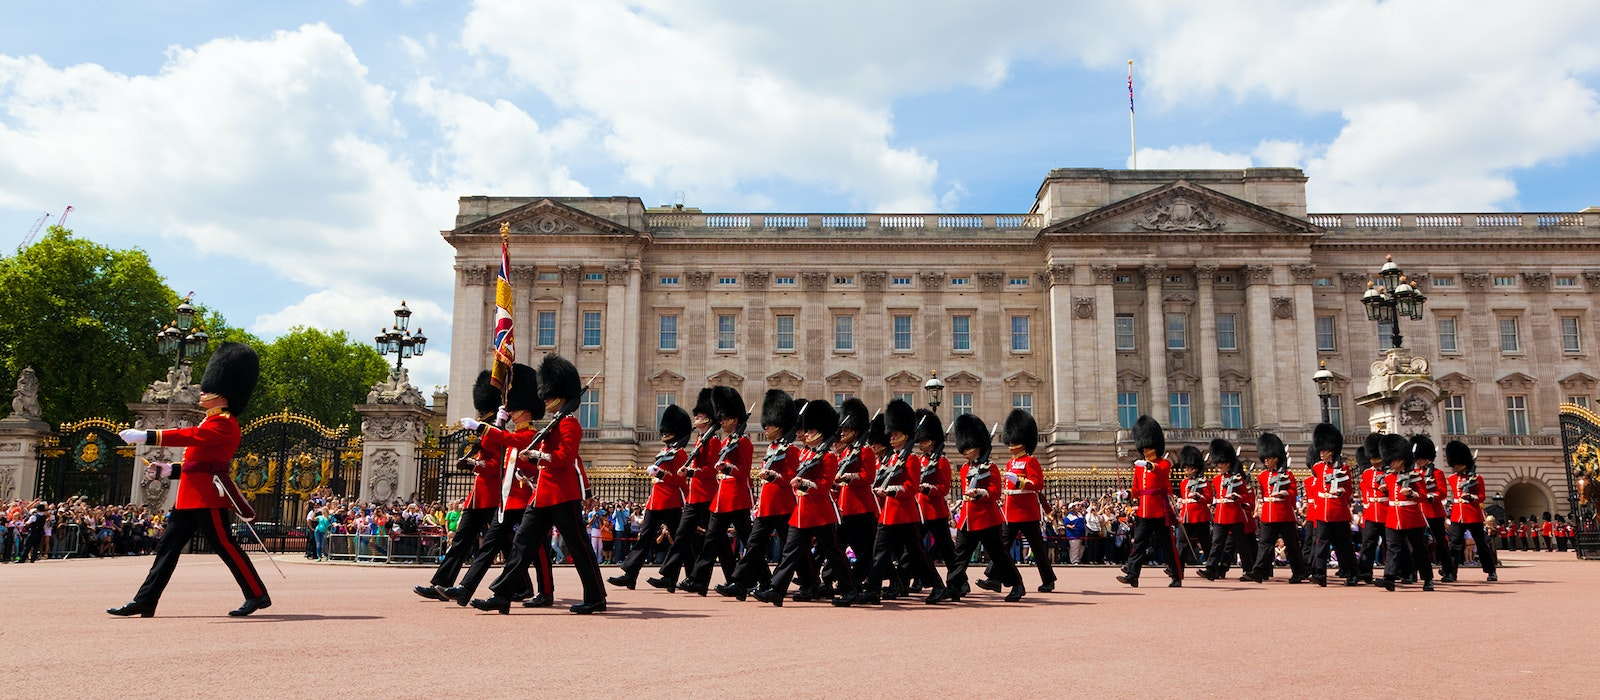 Find a different part of London to stay in this trip, one that fits your unique travel style like a bearskin hat fits a palace guard.